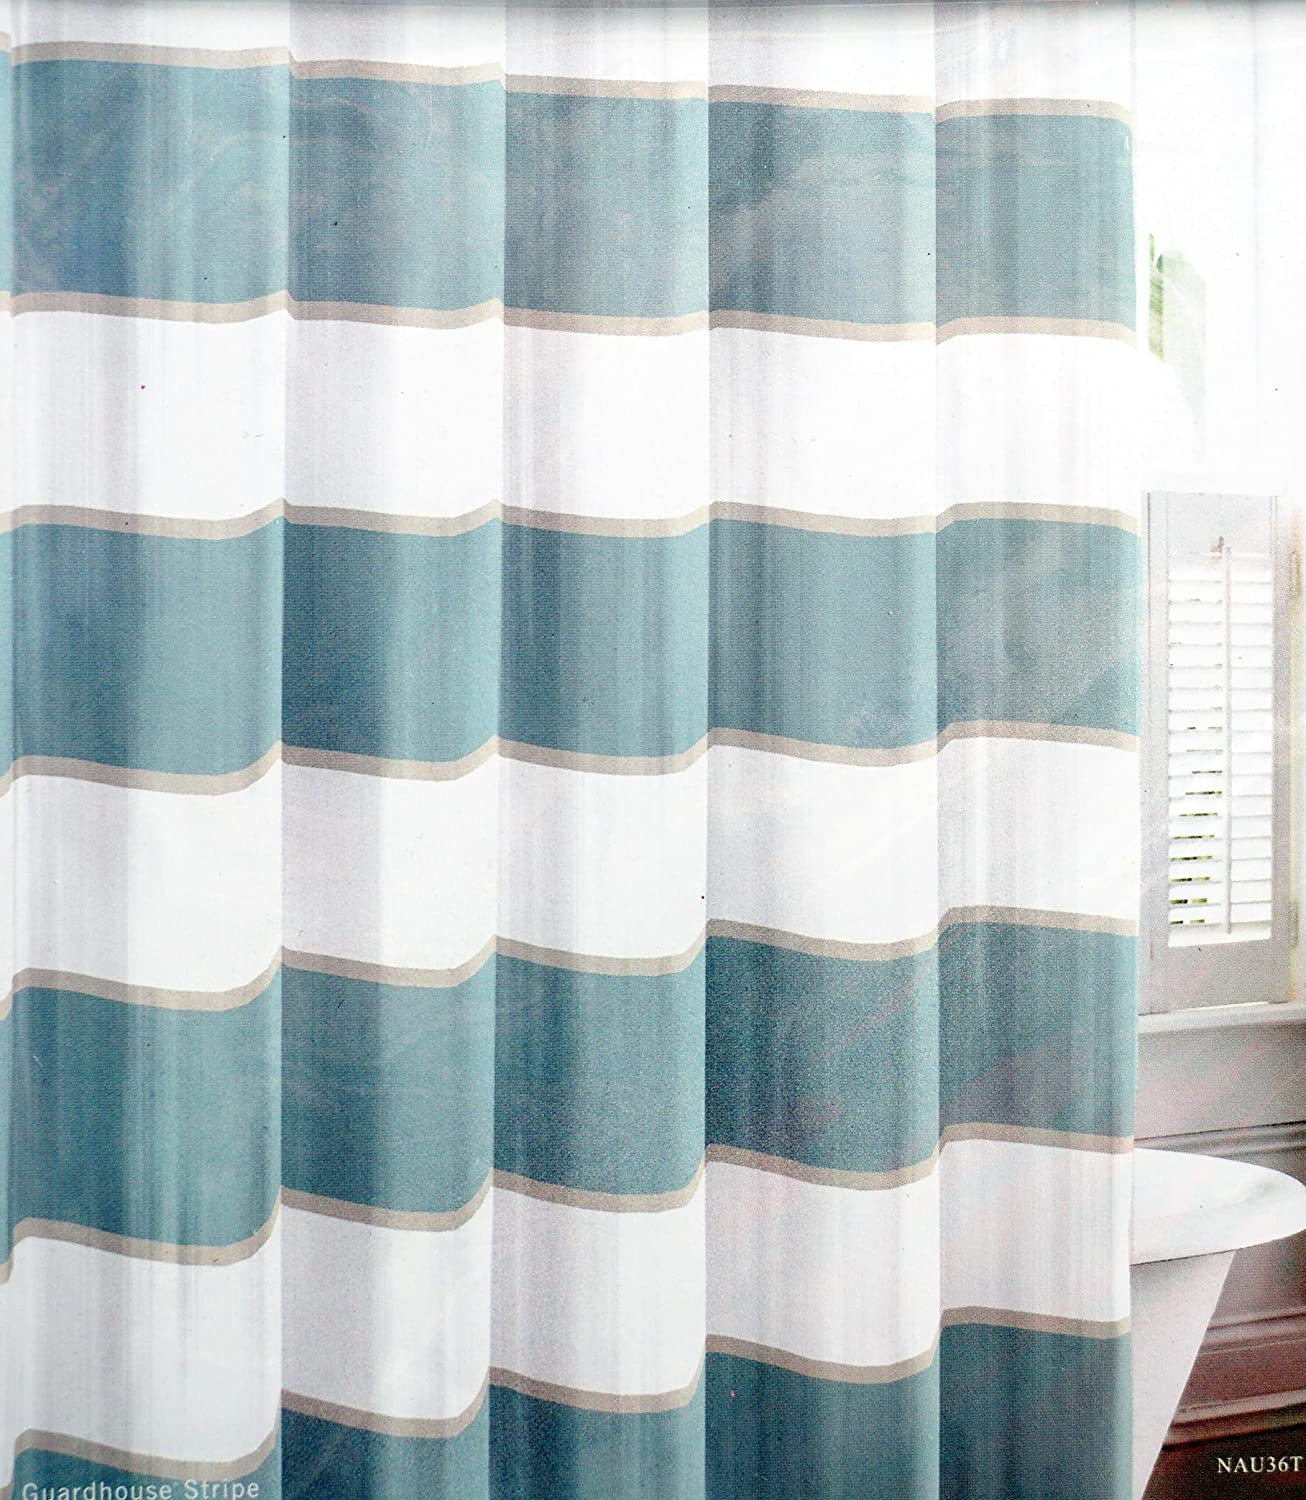 Amazon.com: Nautica Fabric Shower Curtain Wide Green Stripes with ...